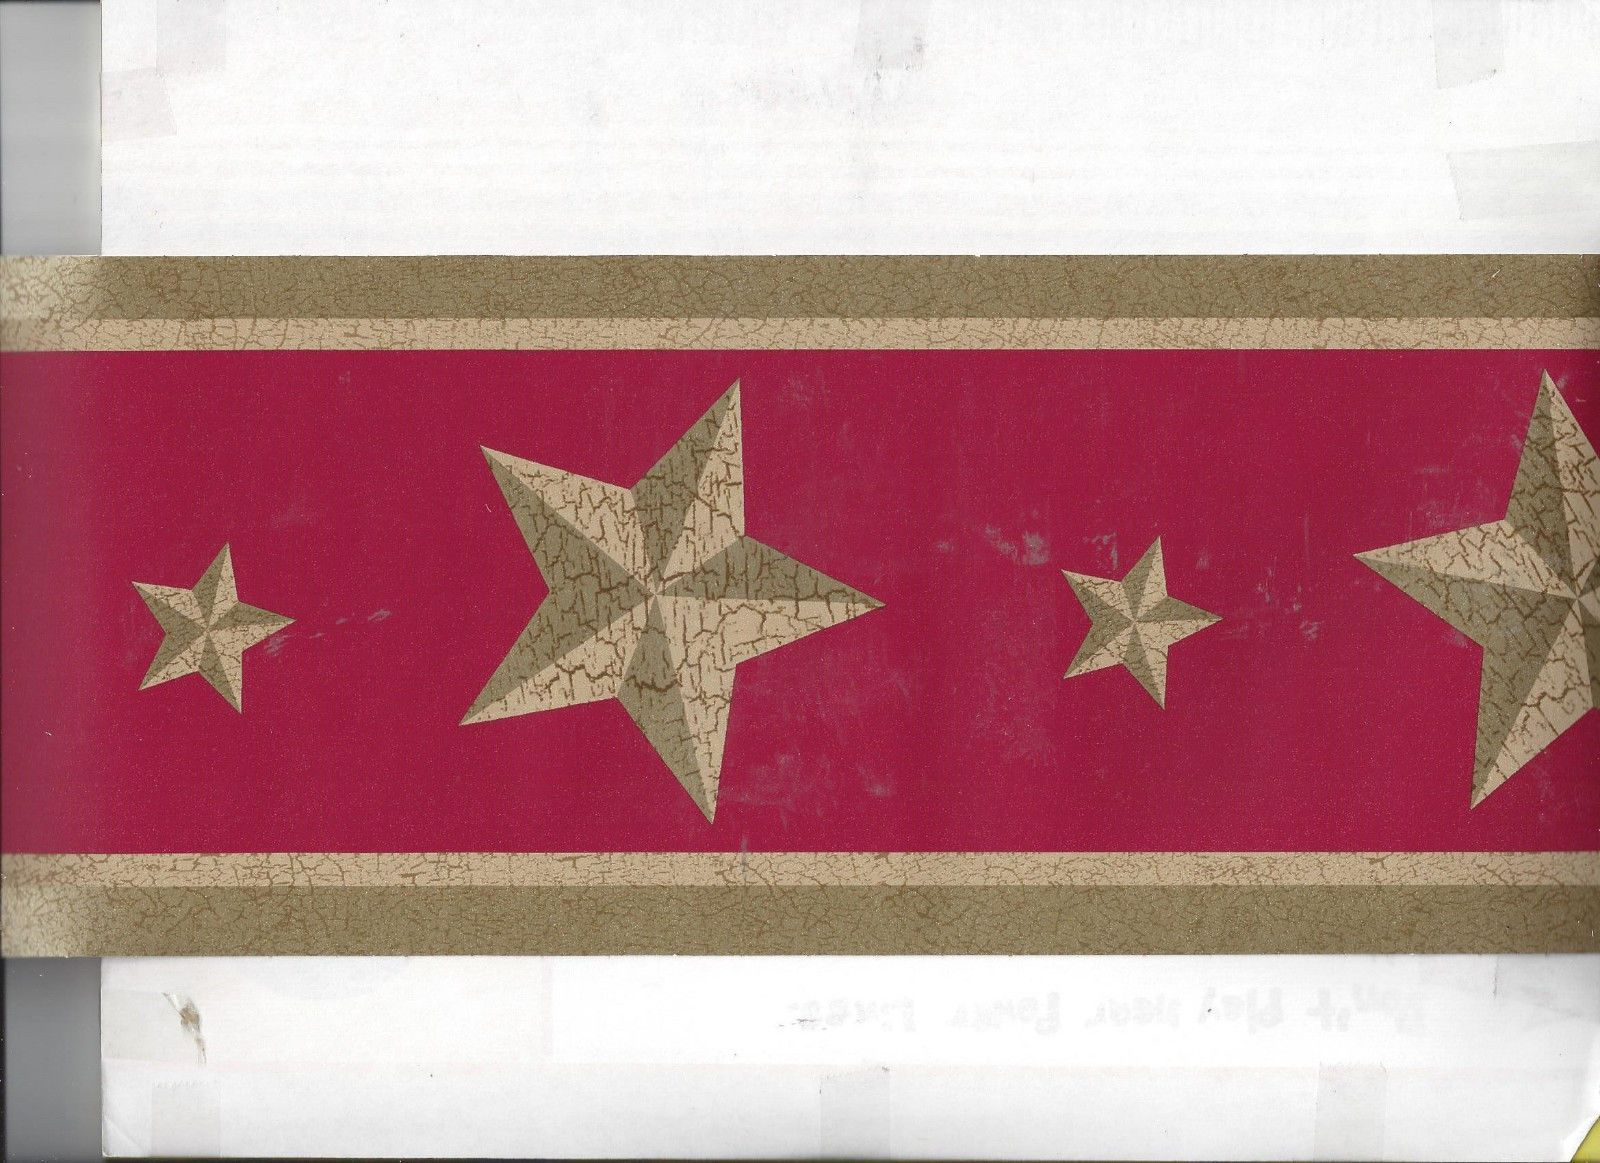 Details about WALLPAPER BORDER STARS ON RED COUNTRY